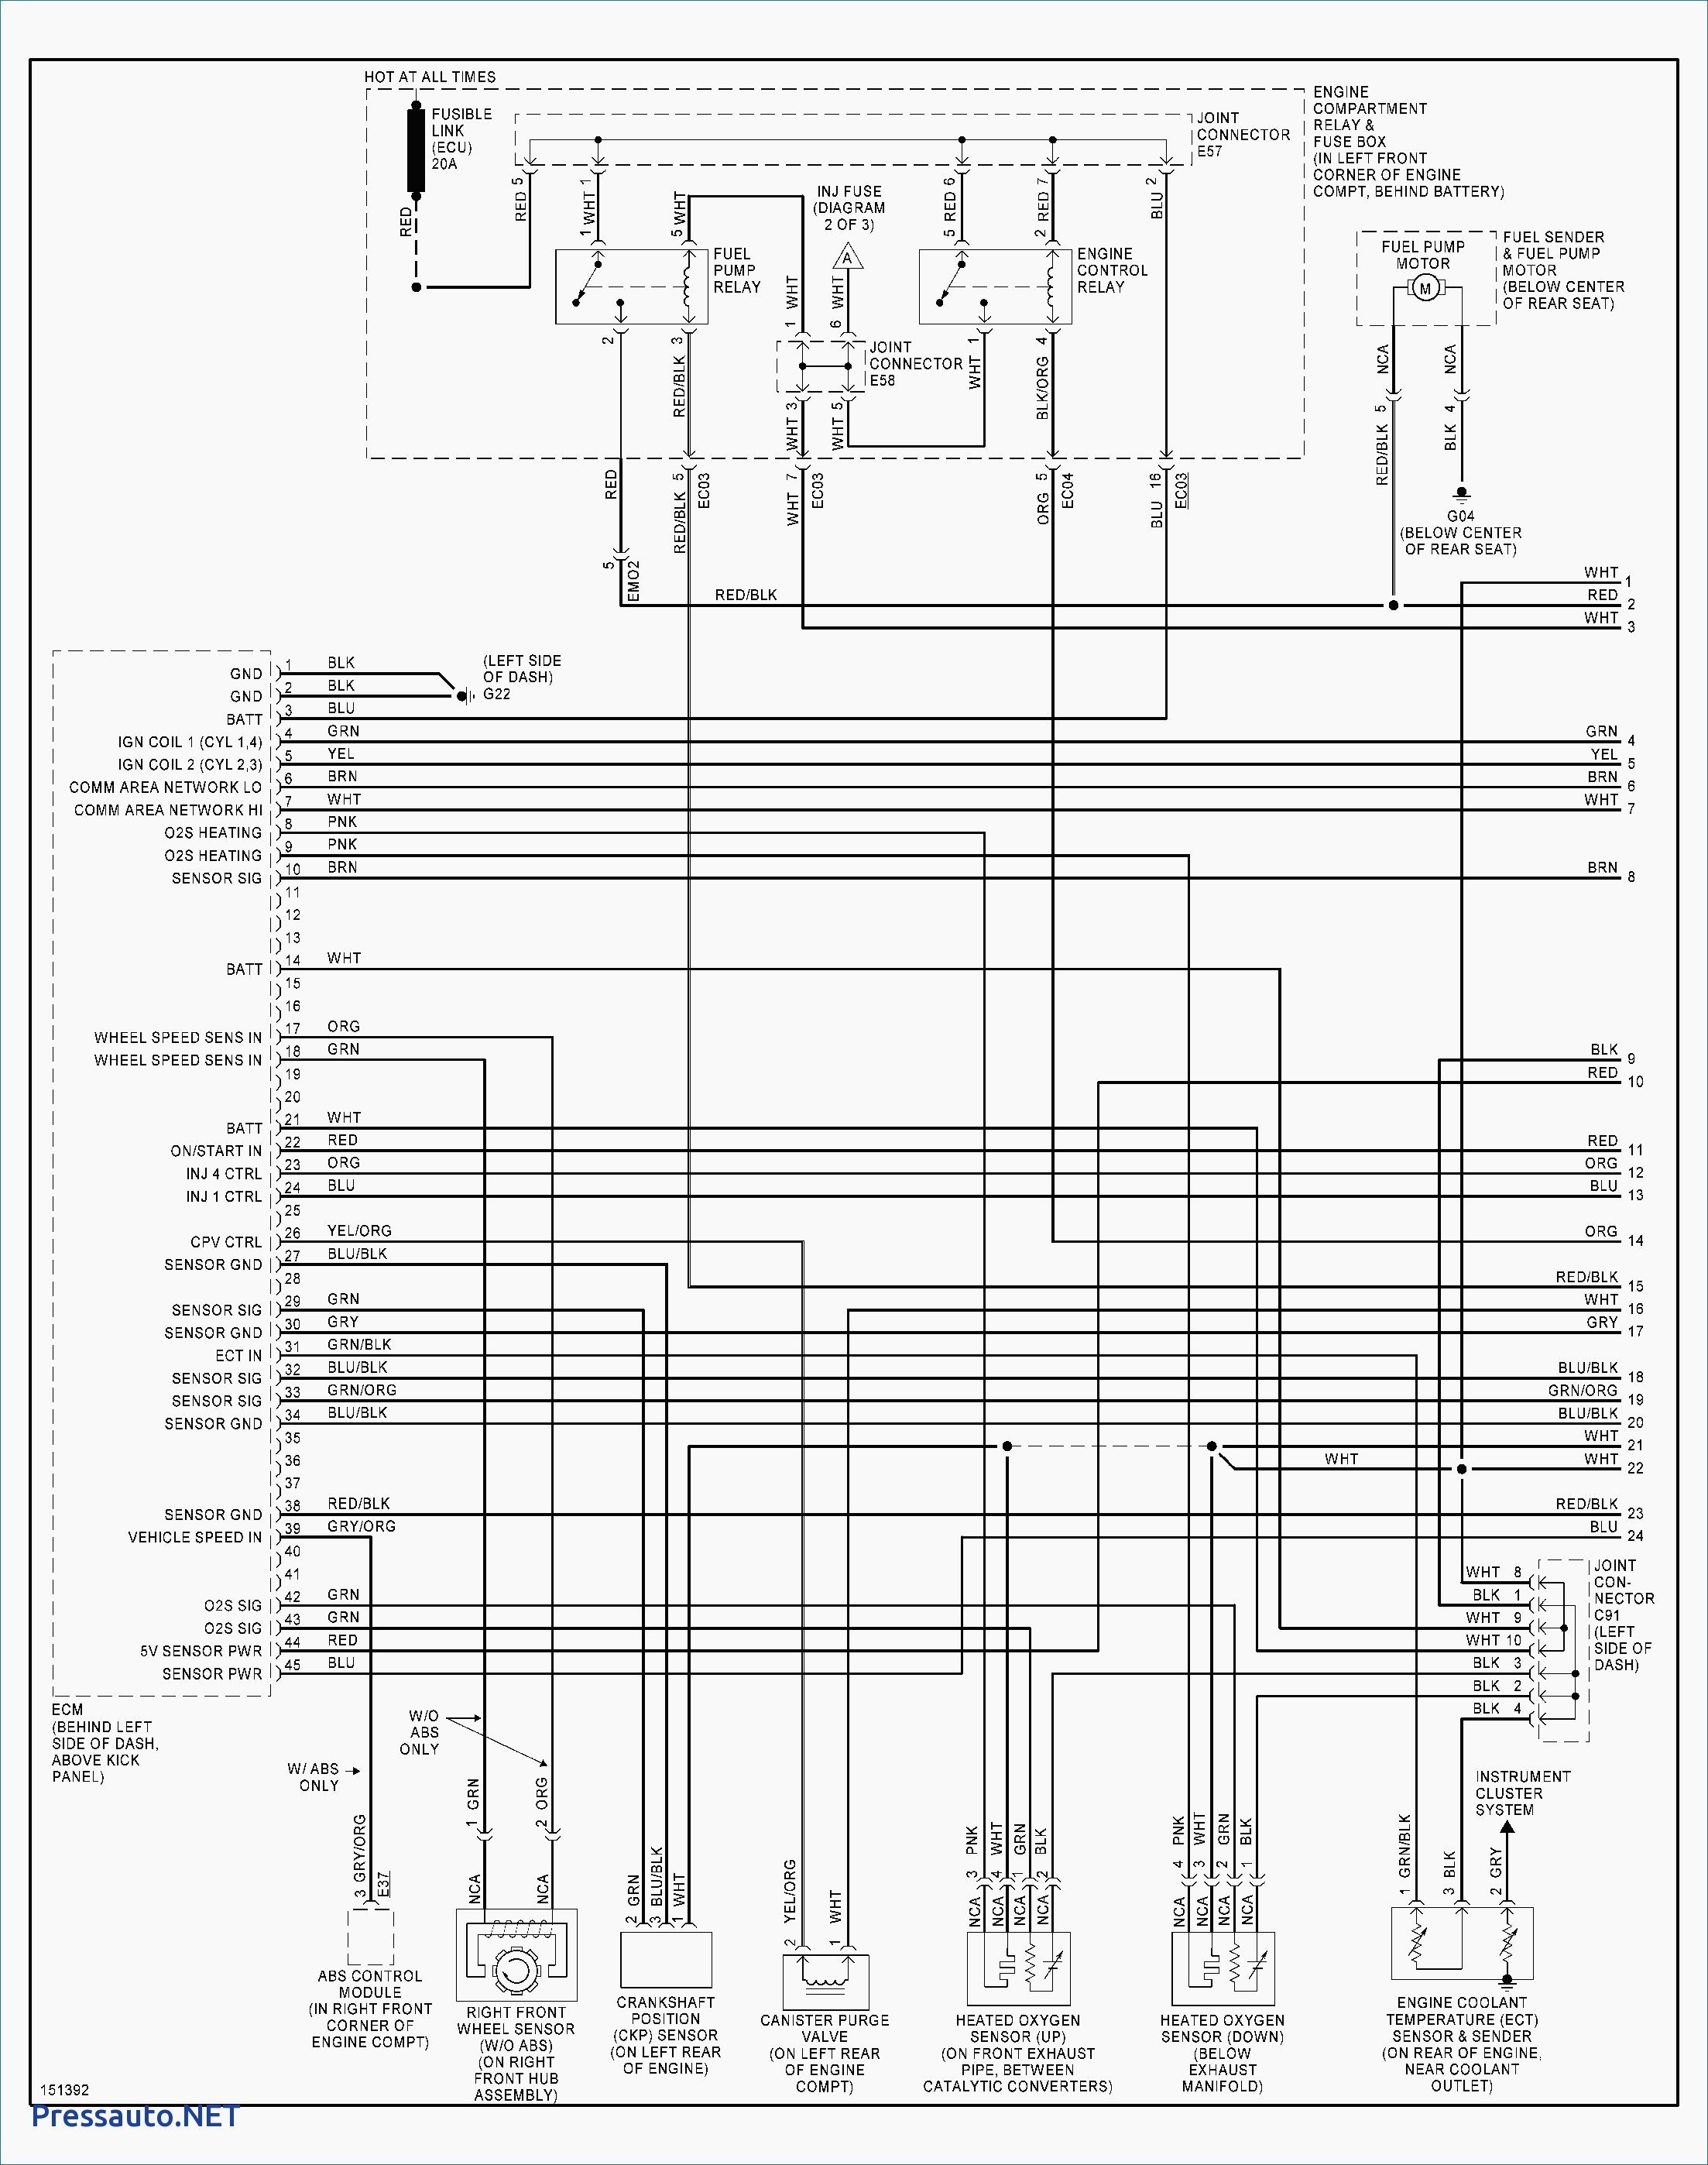 2000 Hyundai Elantra Engine Diagram 2005 Hyundai Accent Engine Diagram 2005 Hyundai sonata Wiring Of 2000 Hyundai Elantra Engine Diagram